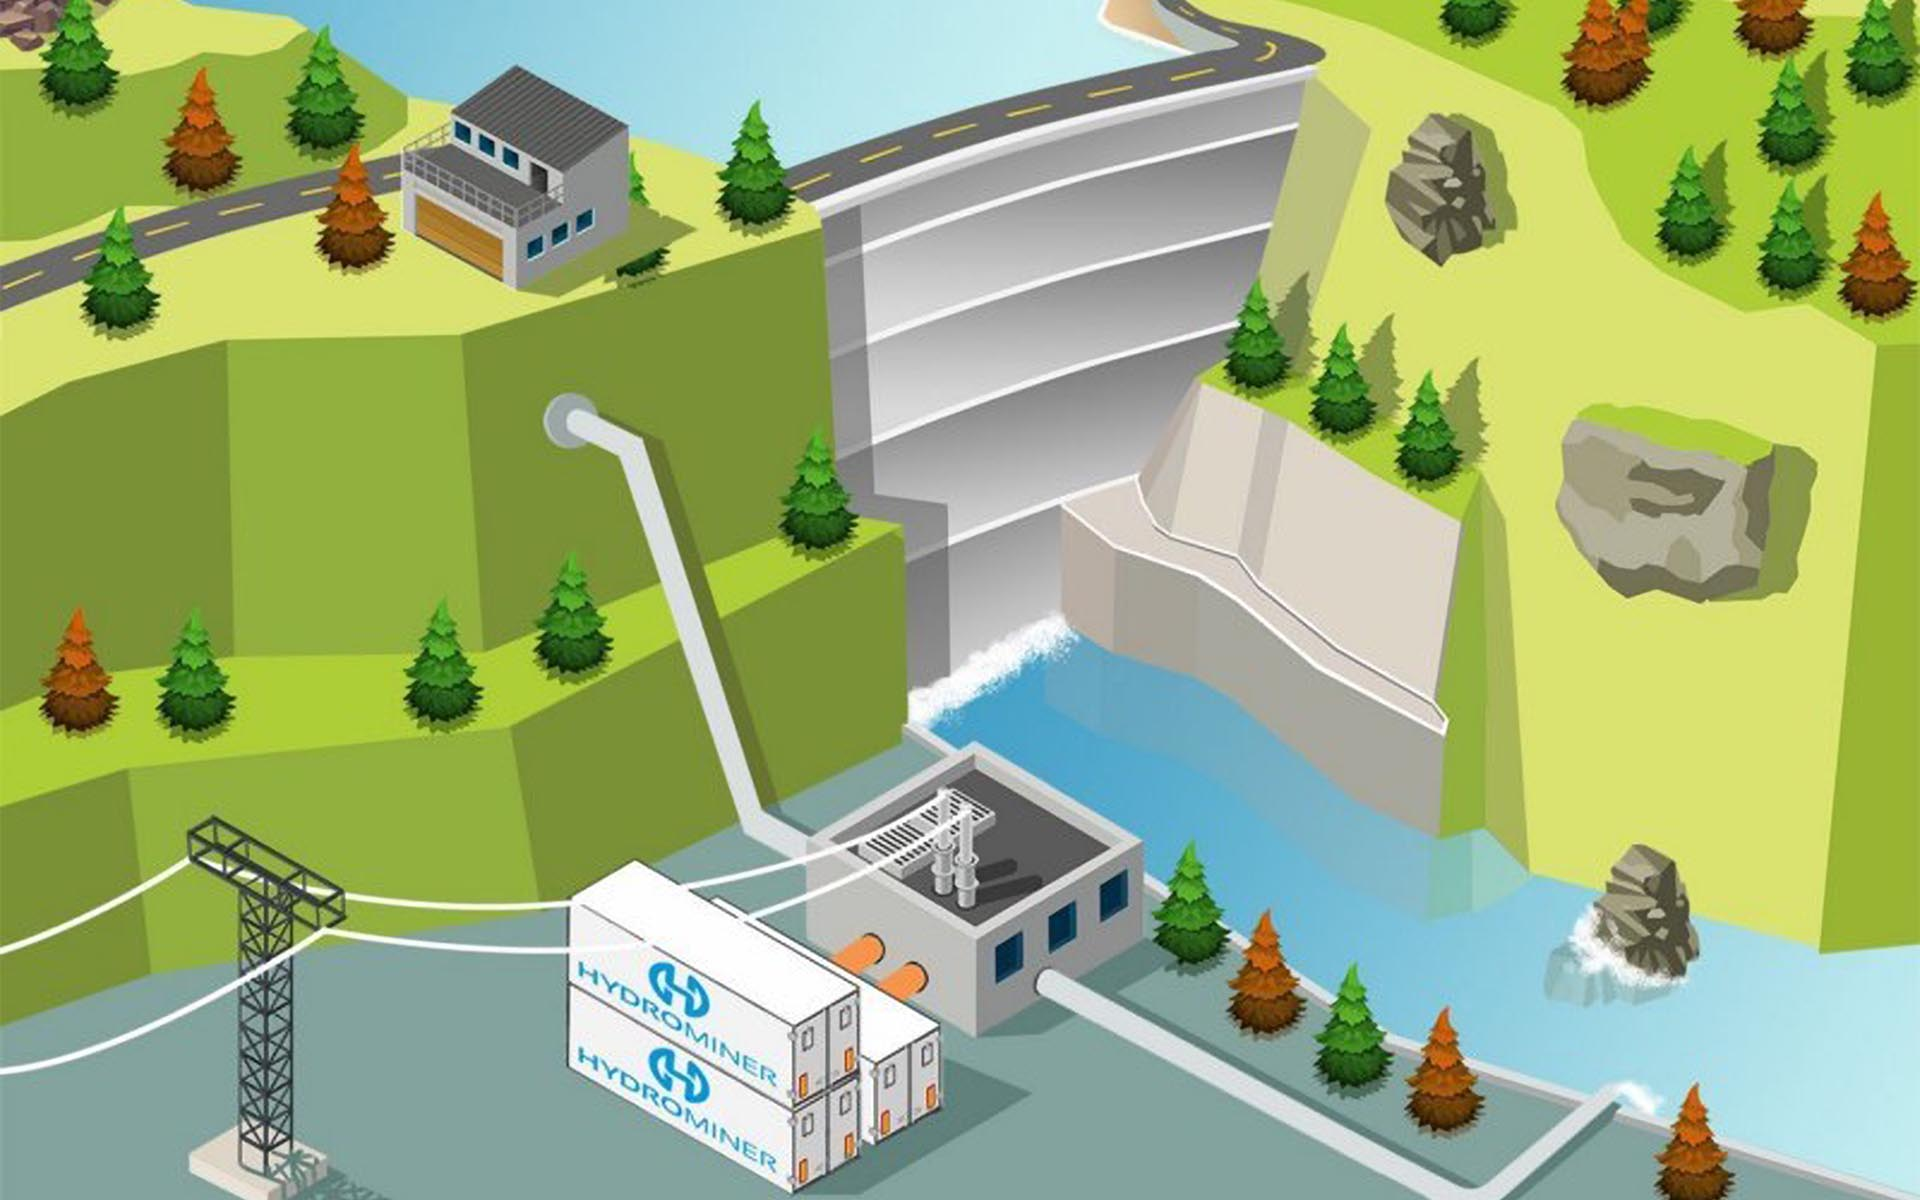 Announcement: HydroMiner ICO - the Eco-Friendly Mining Operation